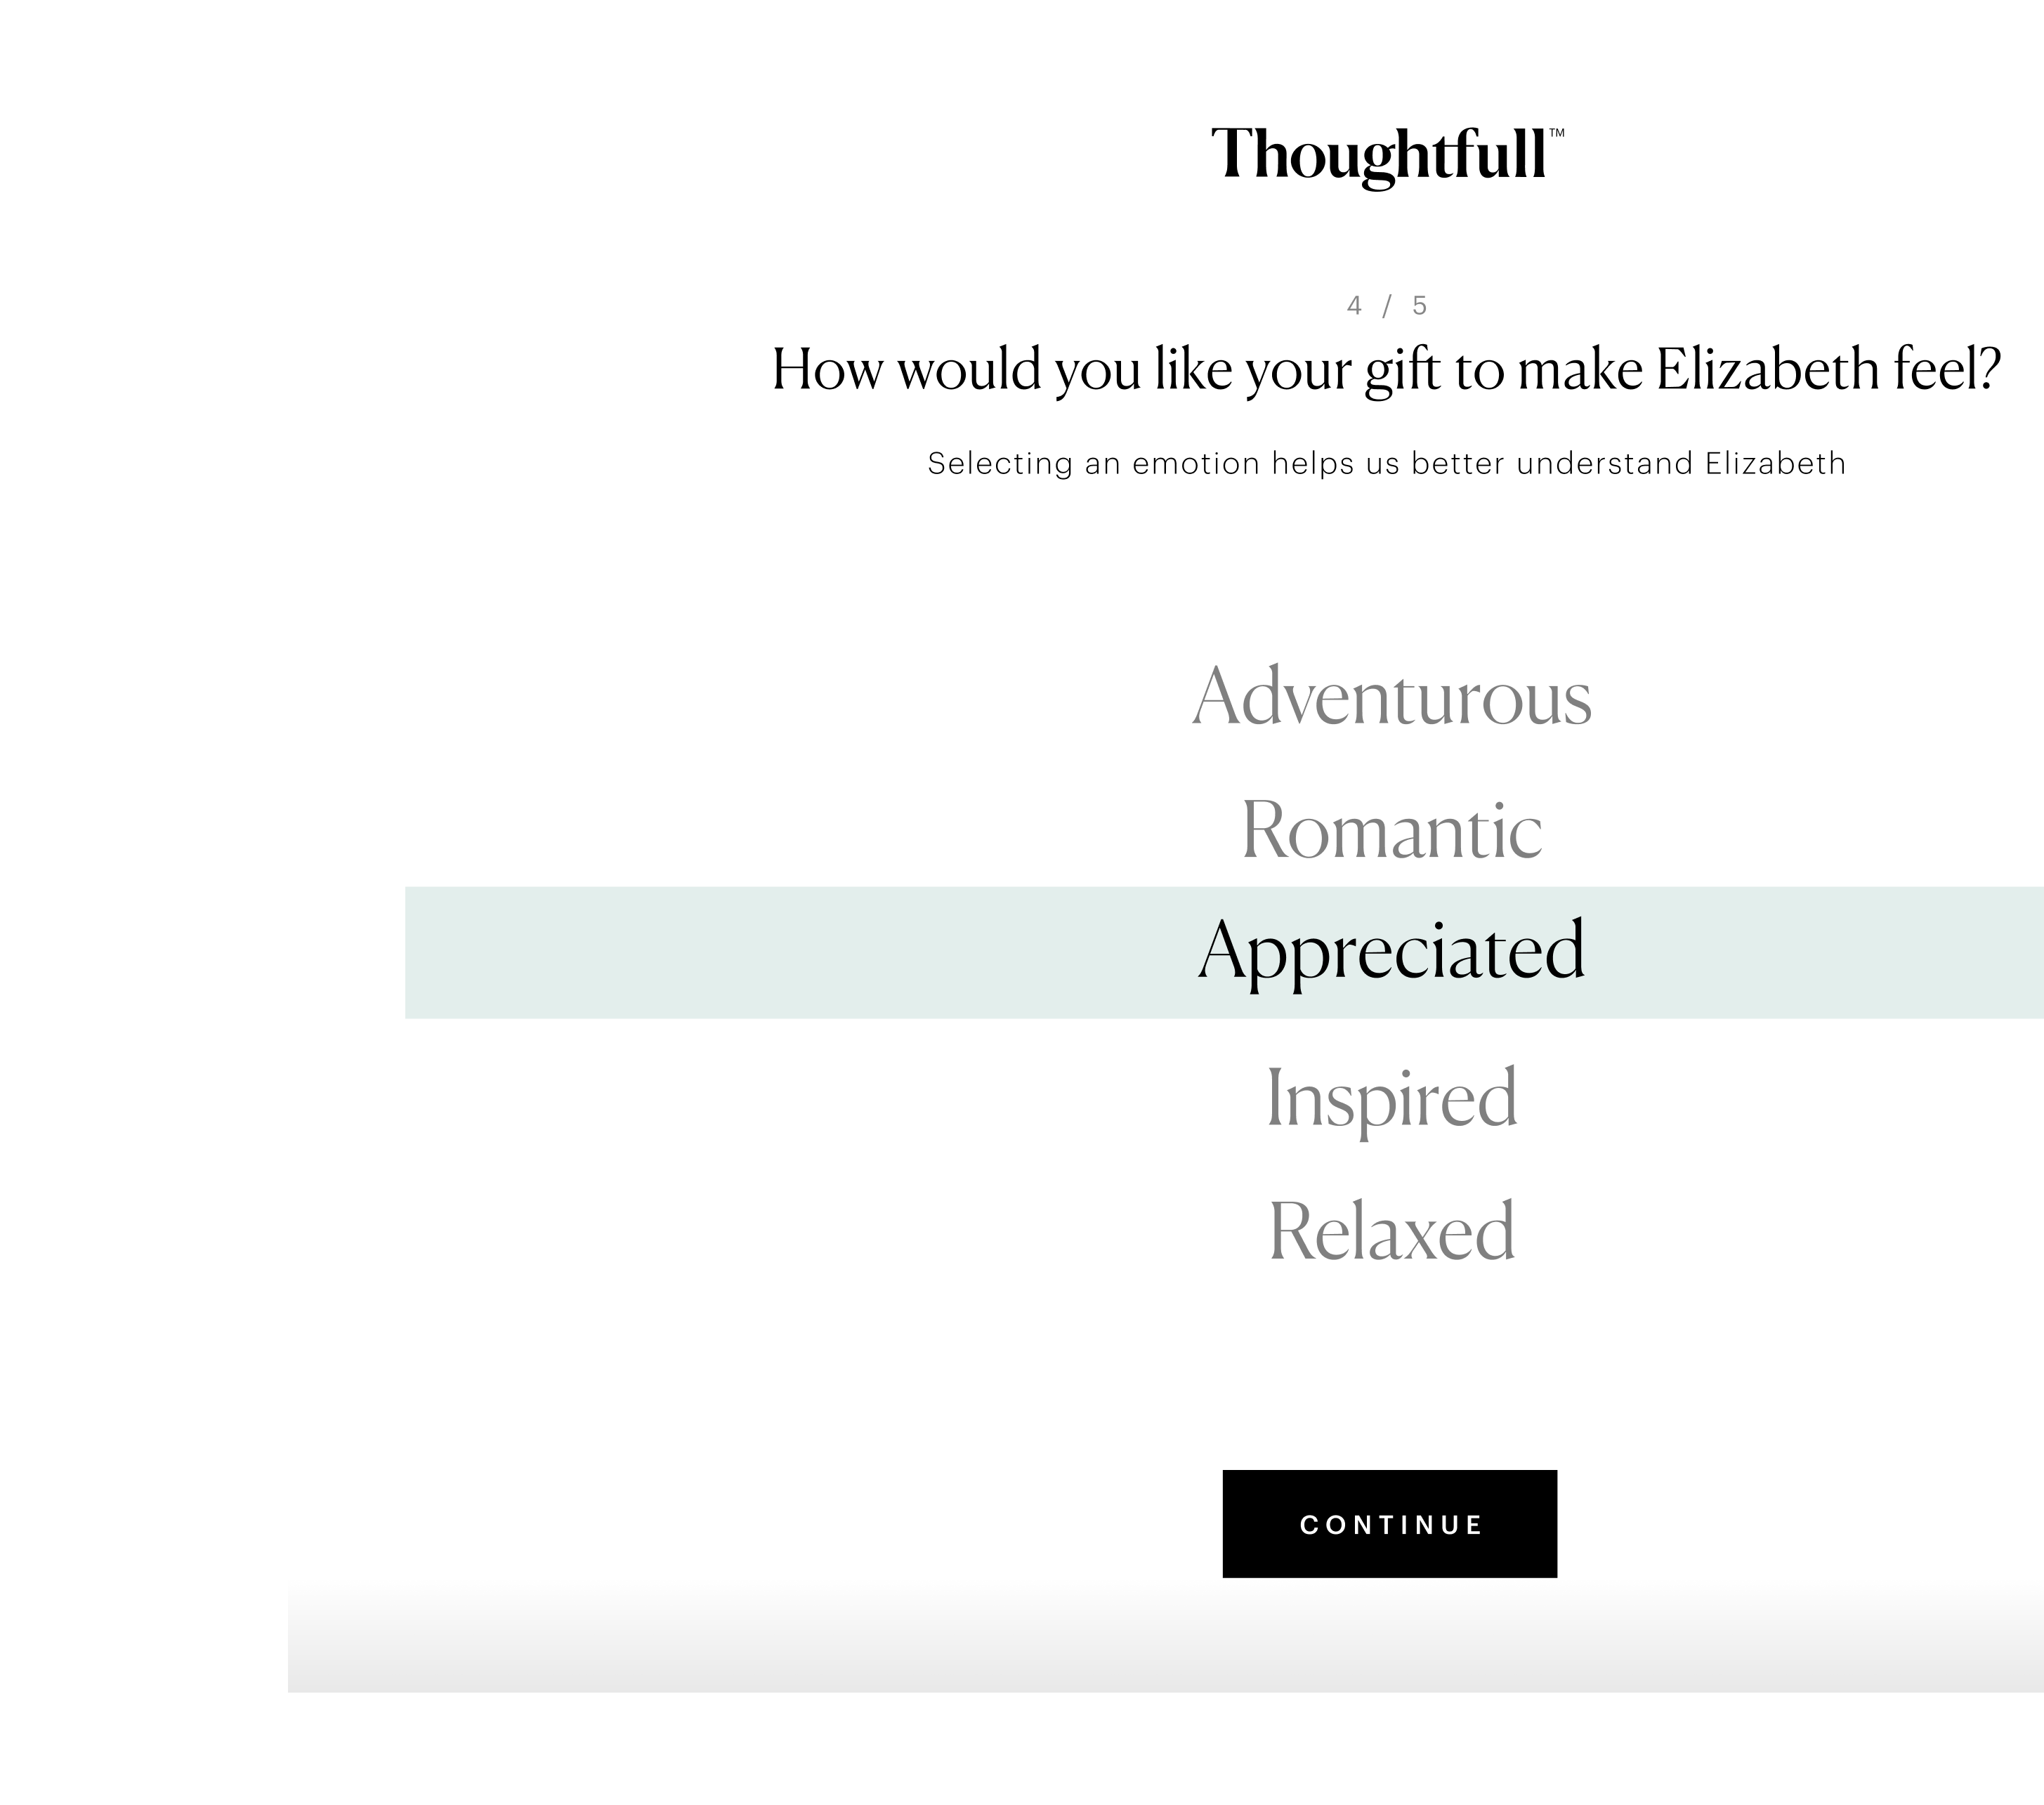 New Gifting Site, Thoughtfull, Leverages  DVXD to Make Meaningful Gifting Simple